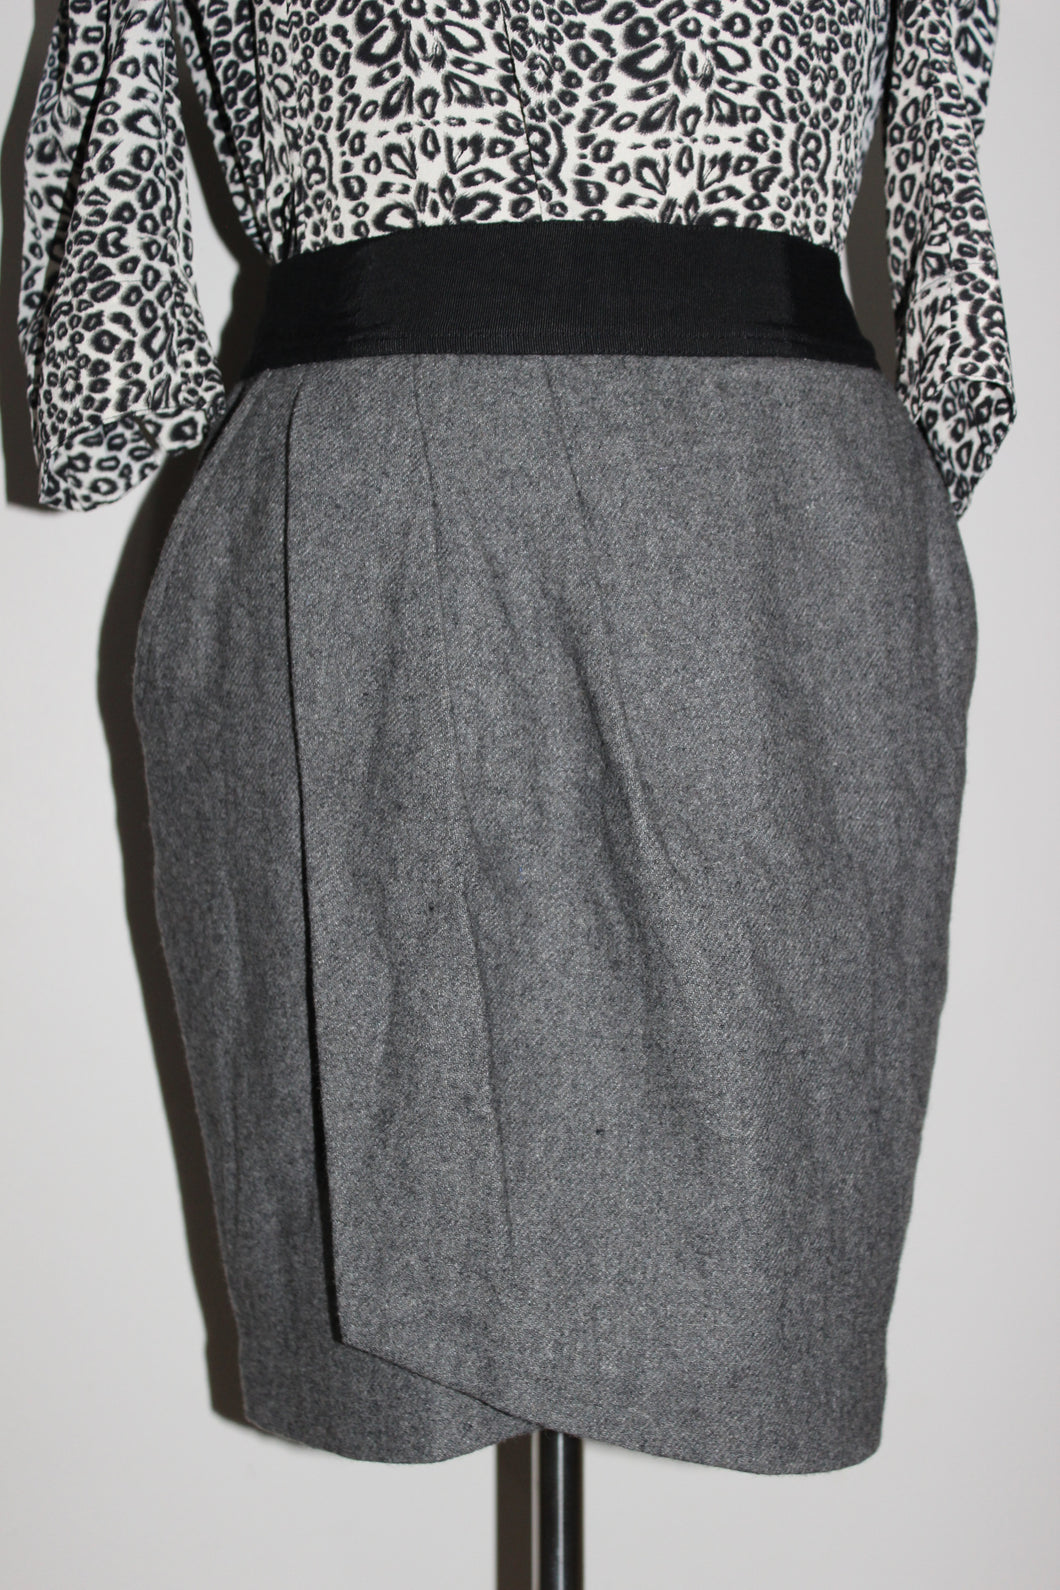 Sports Girl Grey Skirt - Size 12